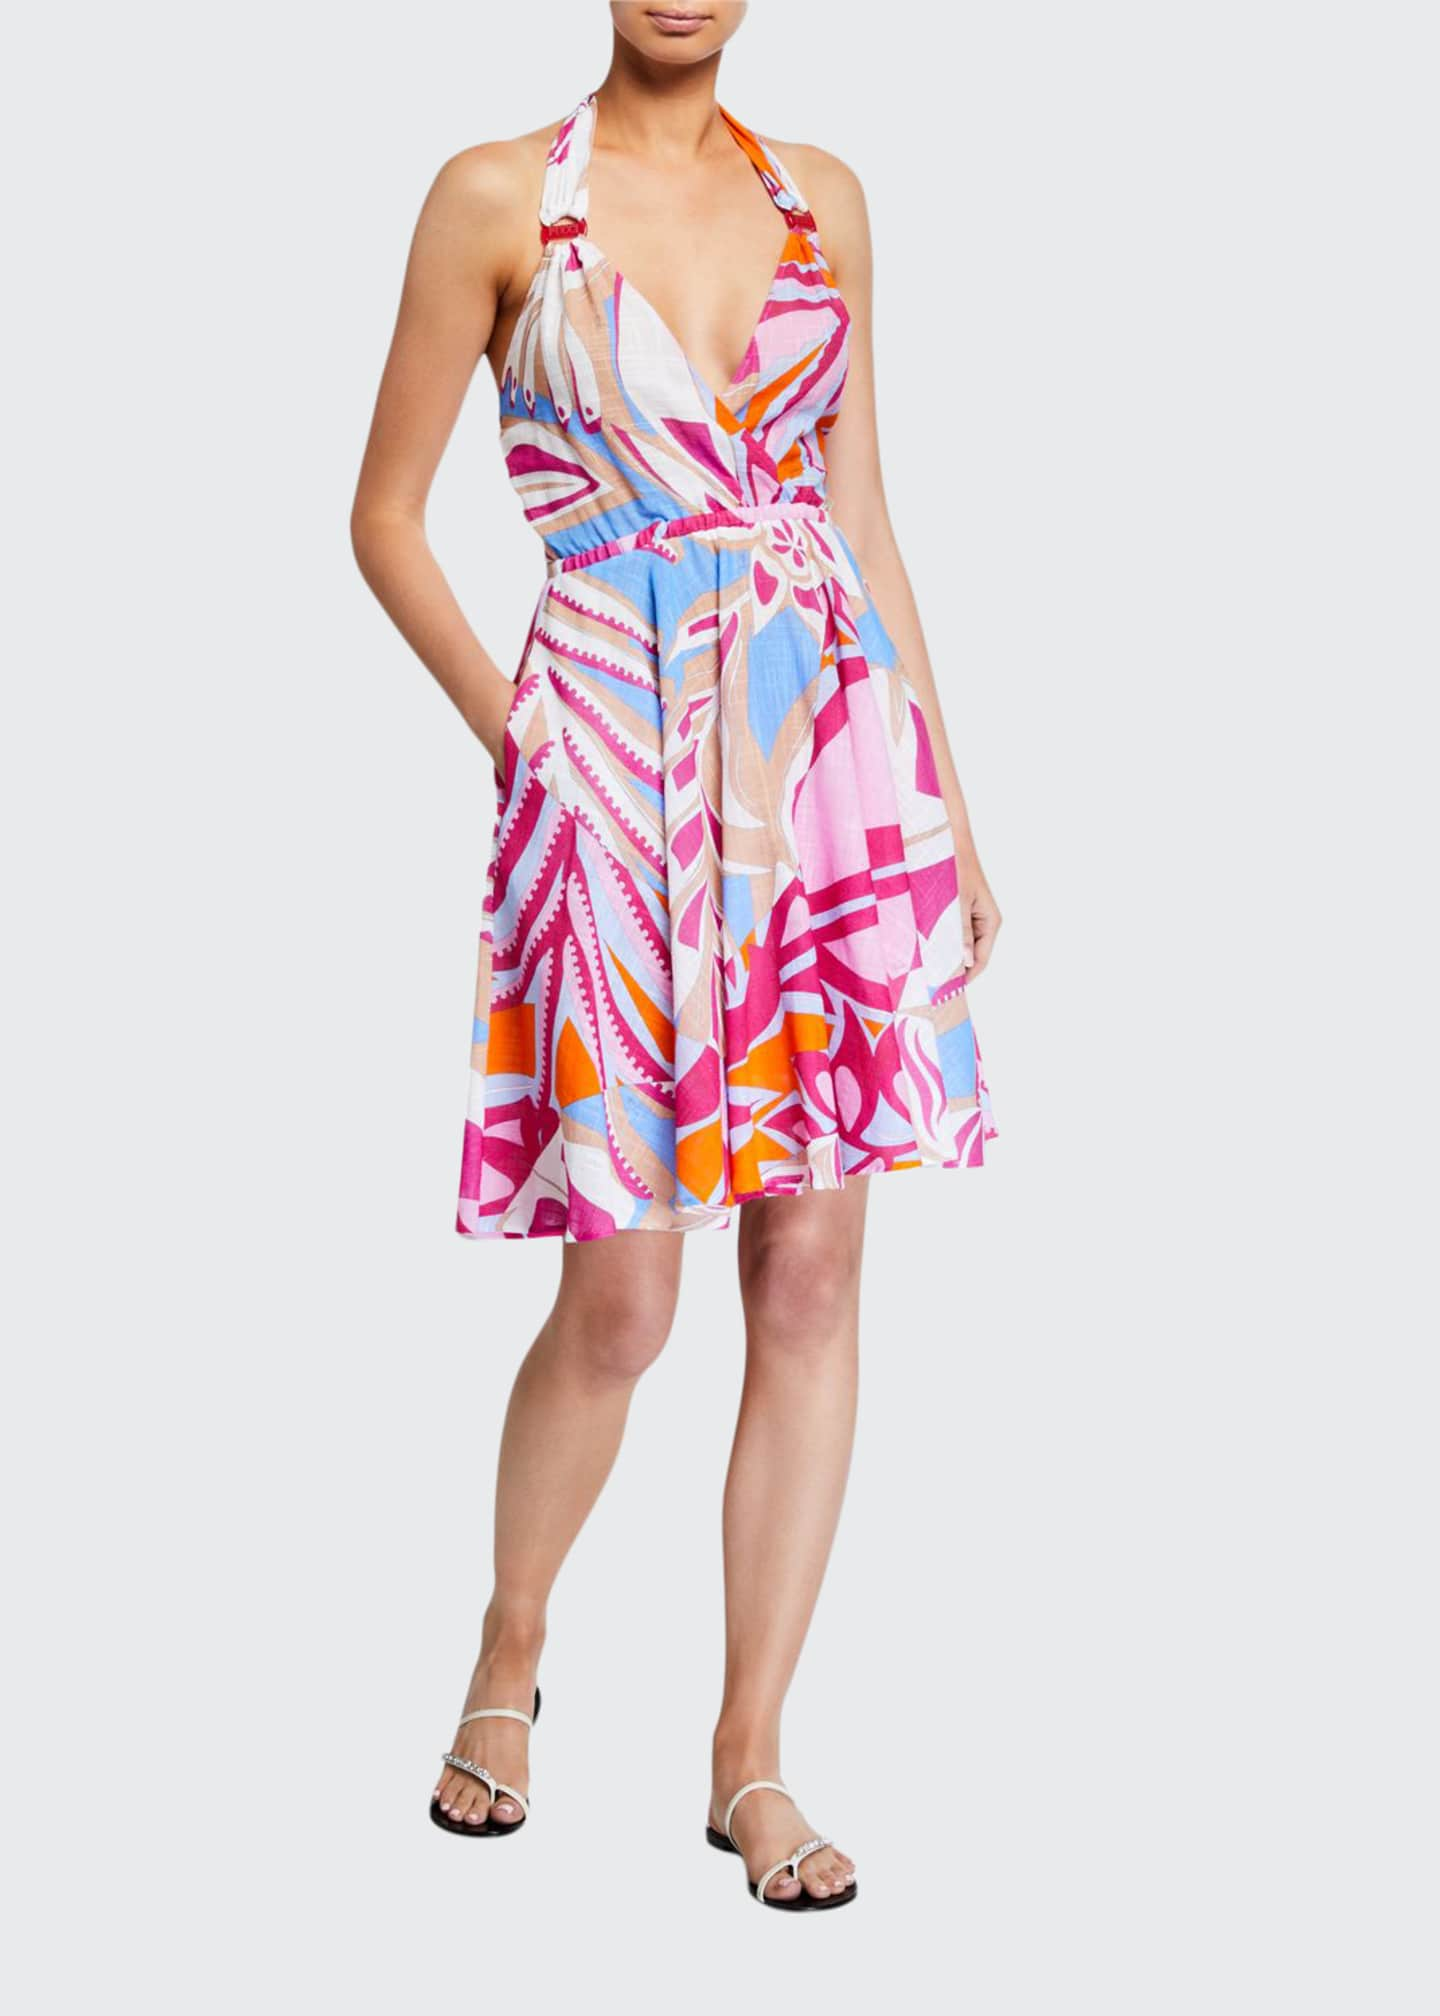 Printed Halter Coverup Dress by Emilio Pucci